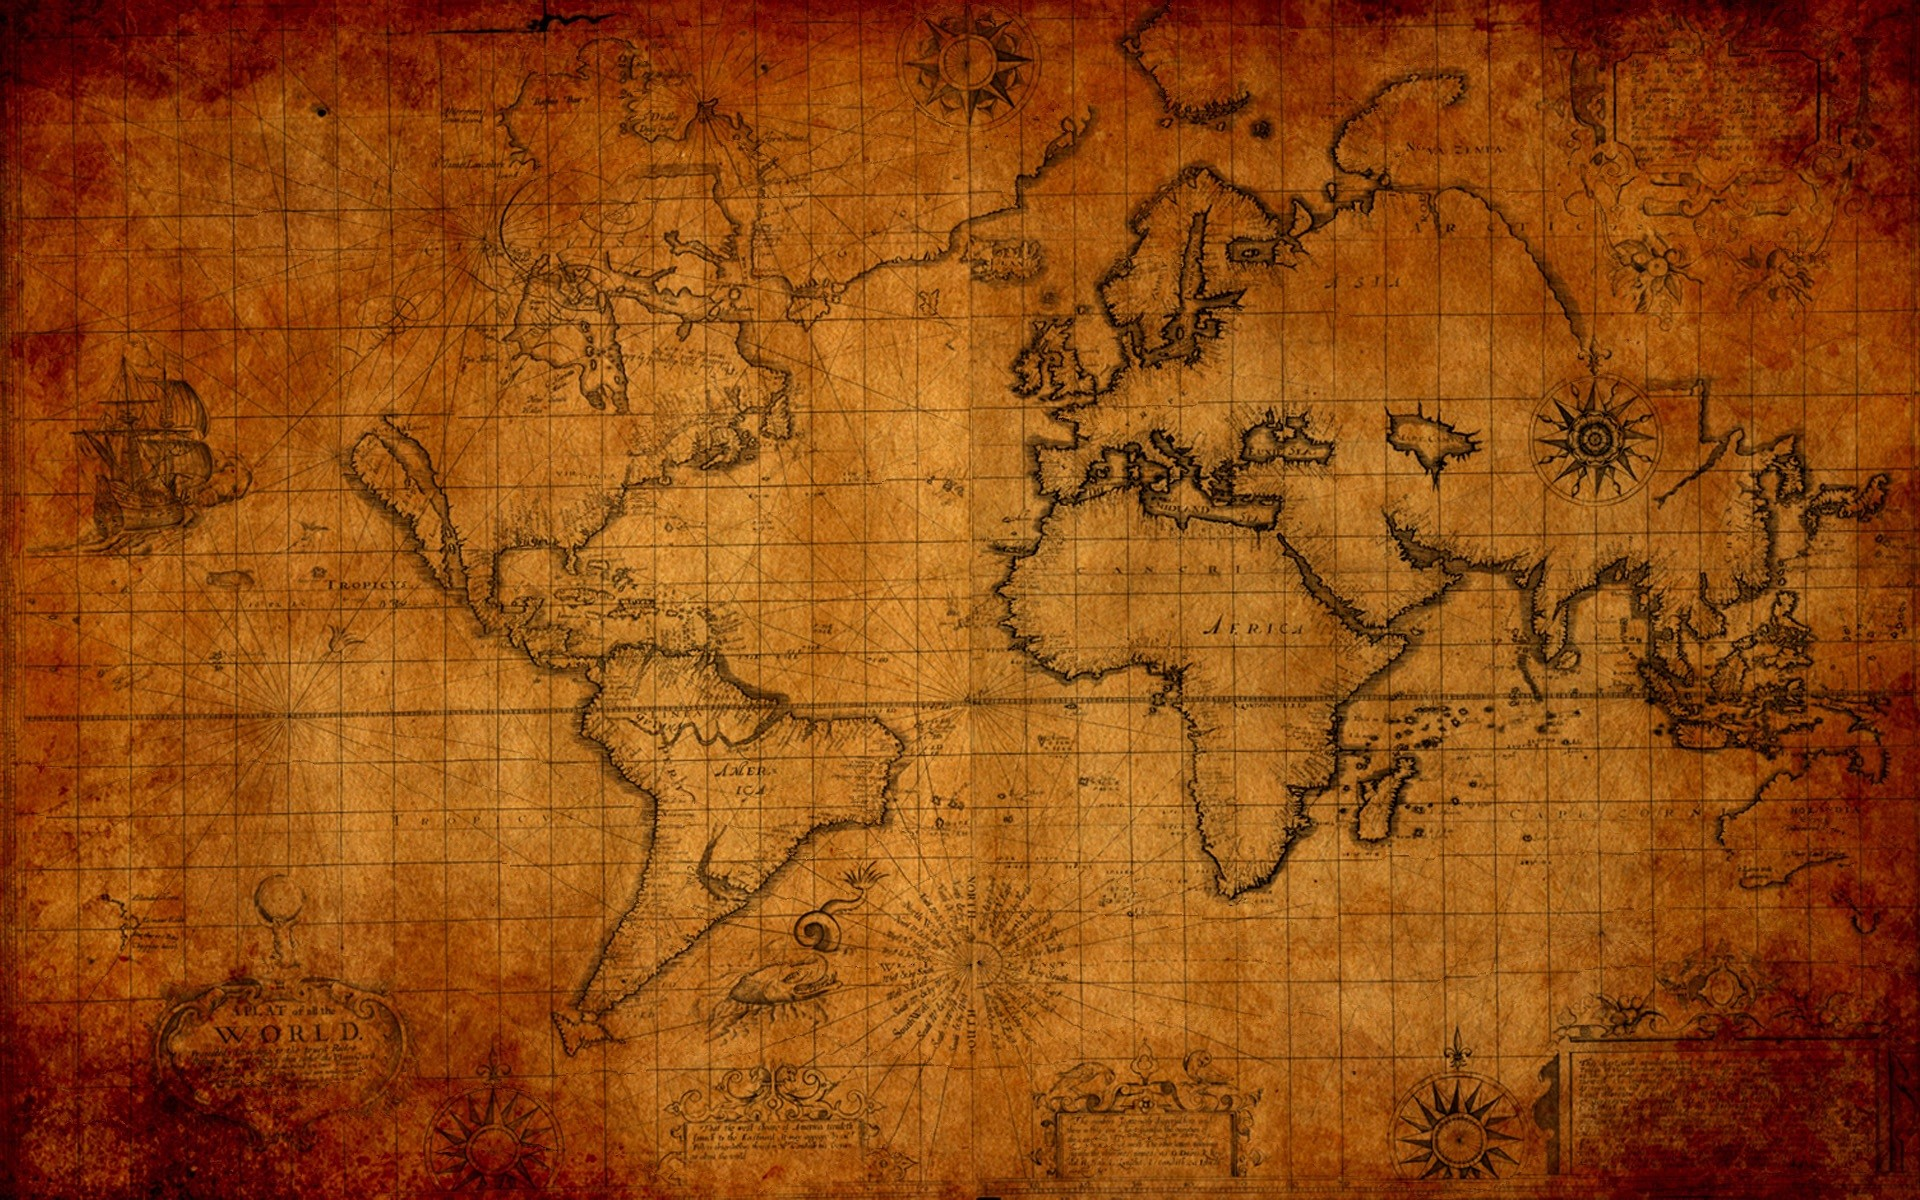 1920x1200 Old world map Digital Art HD desktop wallpaper, Earth wallpaper, Map  wallpaper - Digital Art no.